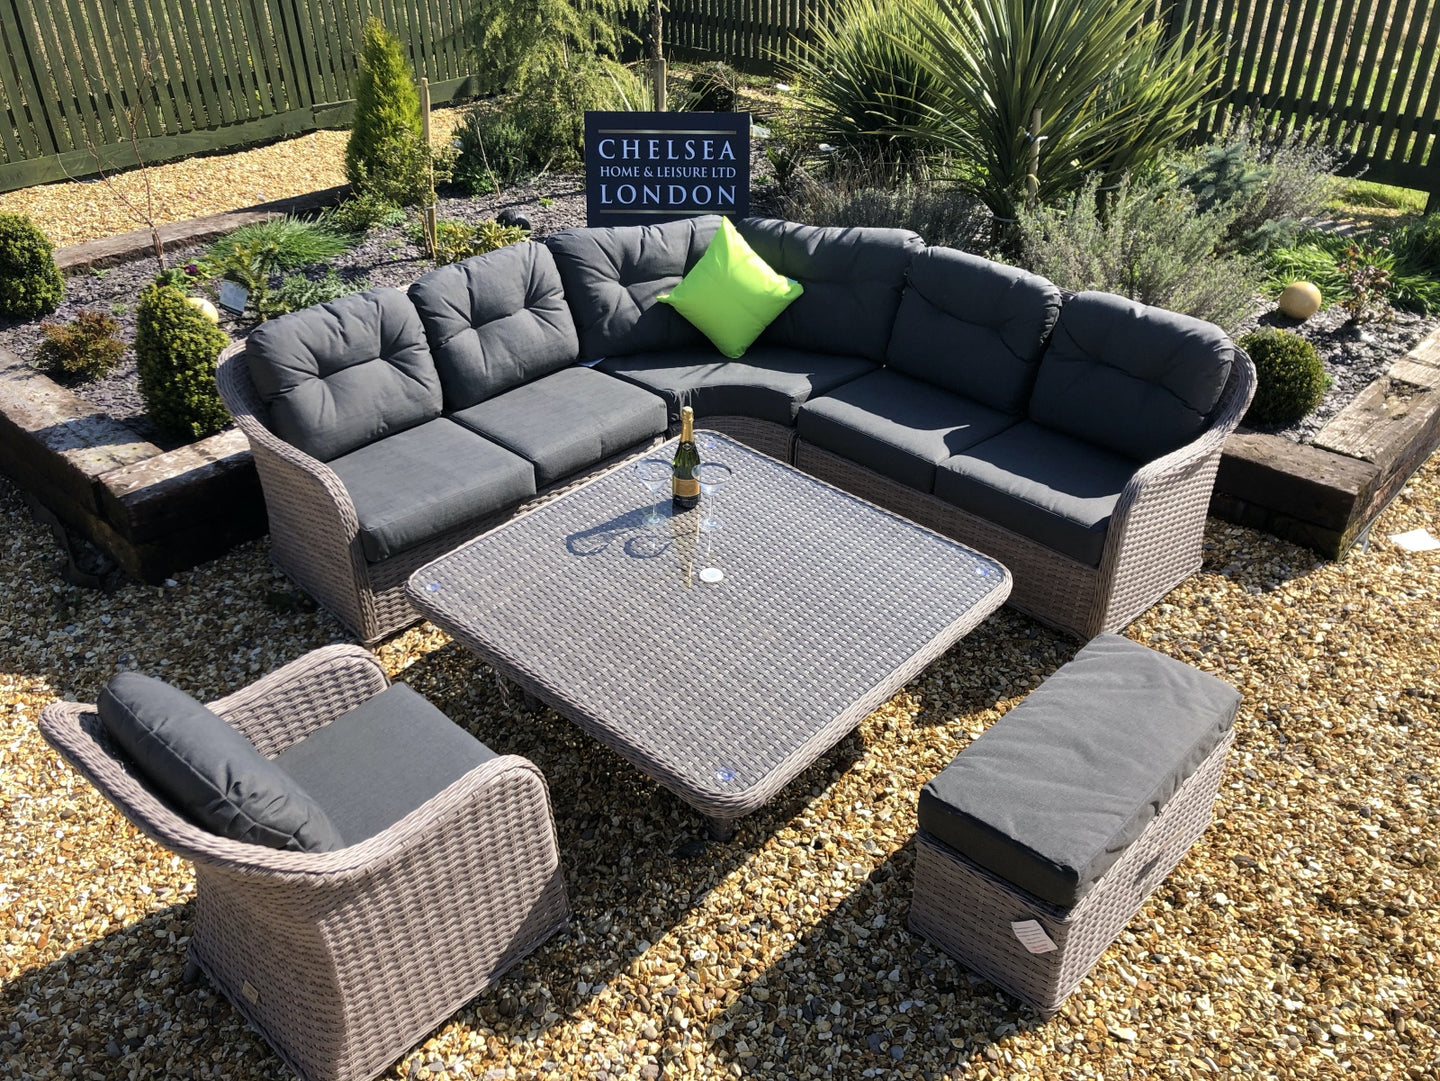 Rattan Garden Furniture Luxury Sofa Set